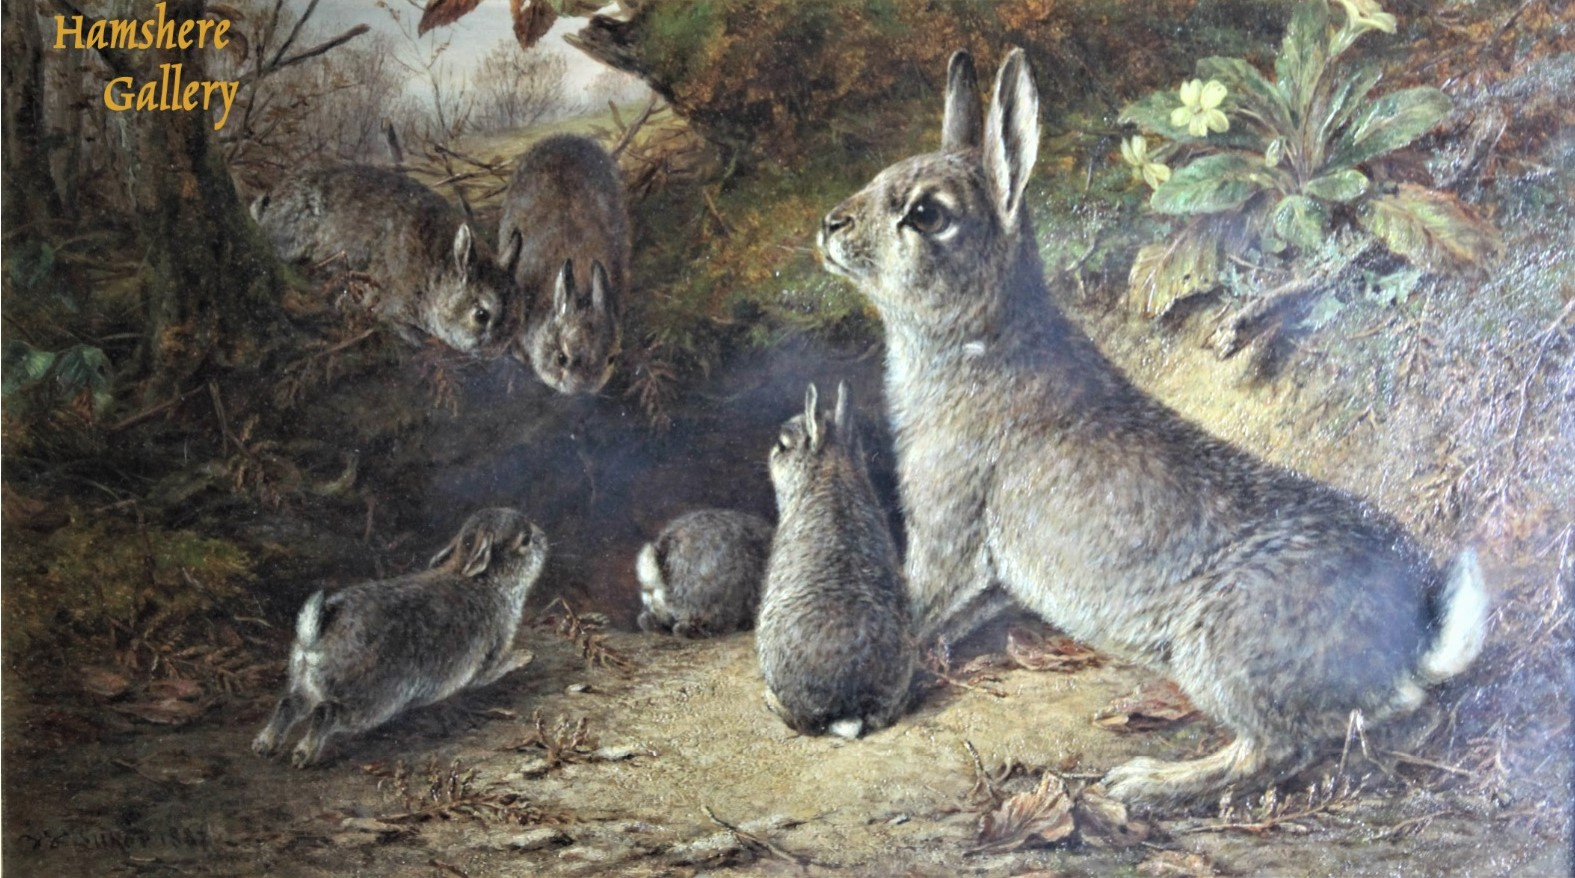 Click to see full size: Oil of a fluffle of rabbits in woodland setting by William Luker jnr., RBA